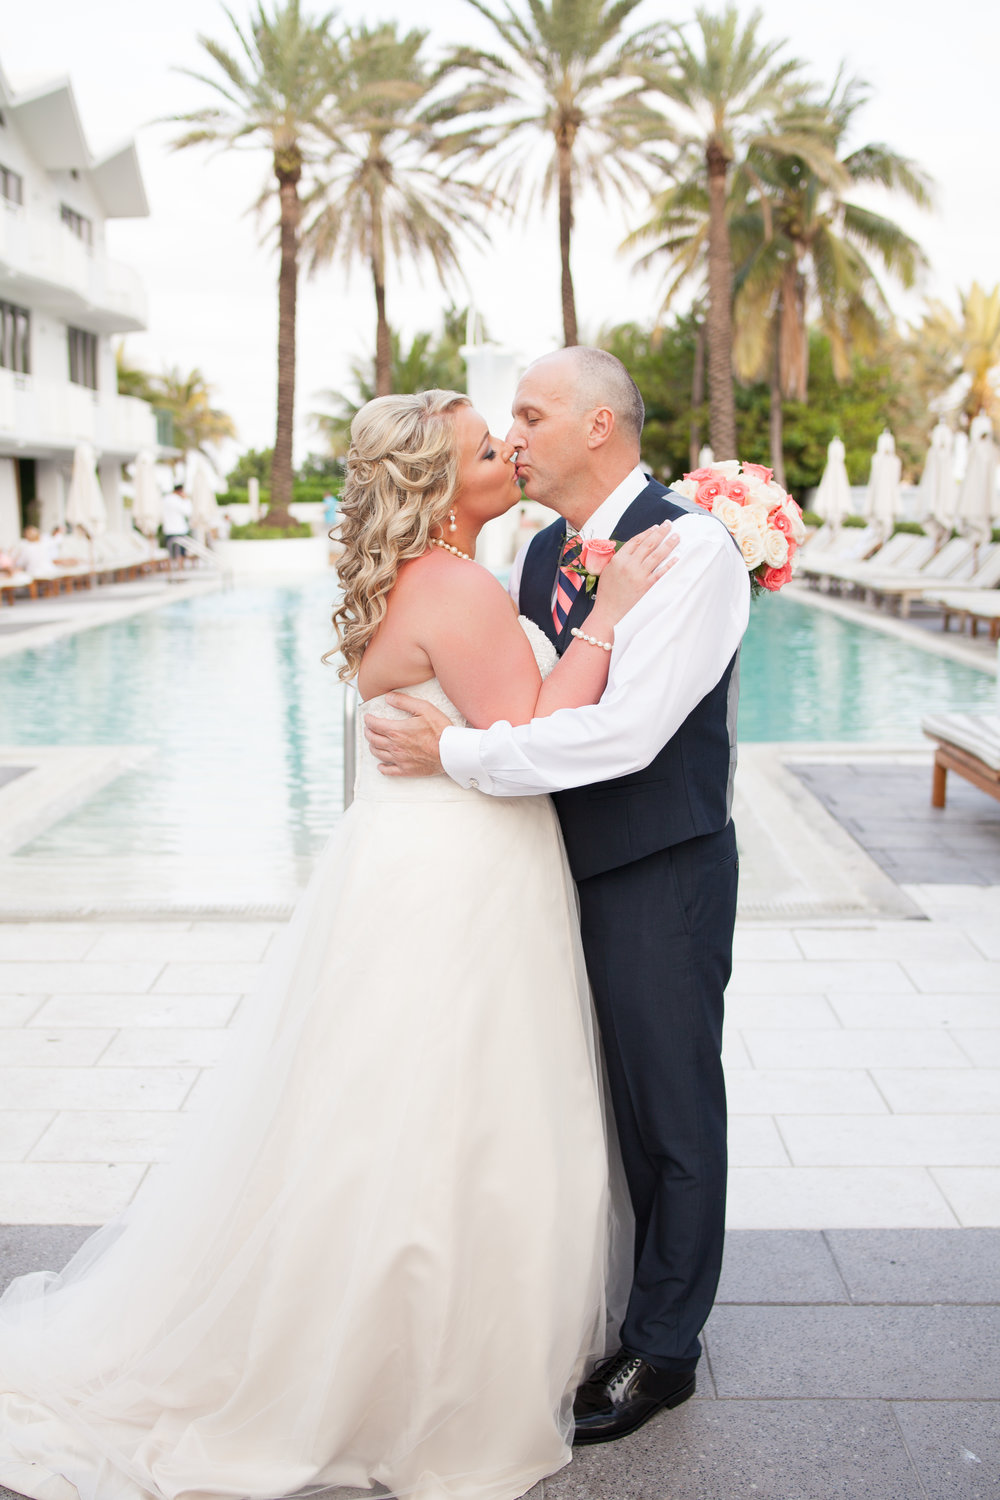 KATE & WADE - I was very nervous when choosing a wedding photographer. Our wedding was a destination wedding and I didn't know anyone in the Miami area. A photographer recommended Claudia Rios Photography and I'm so glad that she did!! From the moment Claudia and her assistant, Marcella arrived they were all about making the day perfect for us. Claudia was great at finding locations at our venue and doing some fun and creative shots and when I got our proofs back today I was blown away! Soooo very pleased with our wedding photos! On top of all of that she did so much more than just take our pictures but was helpful in every way. She and her assistant were willing and offering to do anything and everything that they would see was needed. They went above and beyond. At the end of the day we felt like we had made a friend. Claudia was so easy to work with from the first email to the delivery of our pictures. If you're in the market for a wedding photographer I HIGHLY recommend Claudia Rios Photography. Thanks again Claudia and Marcella for all that you guys did for us!